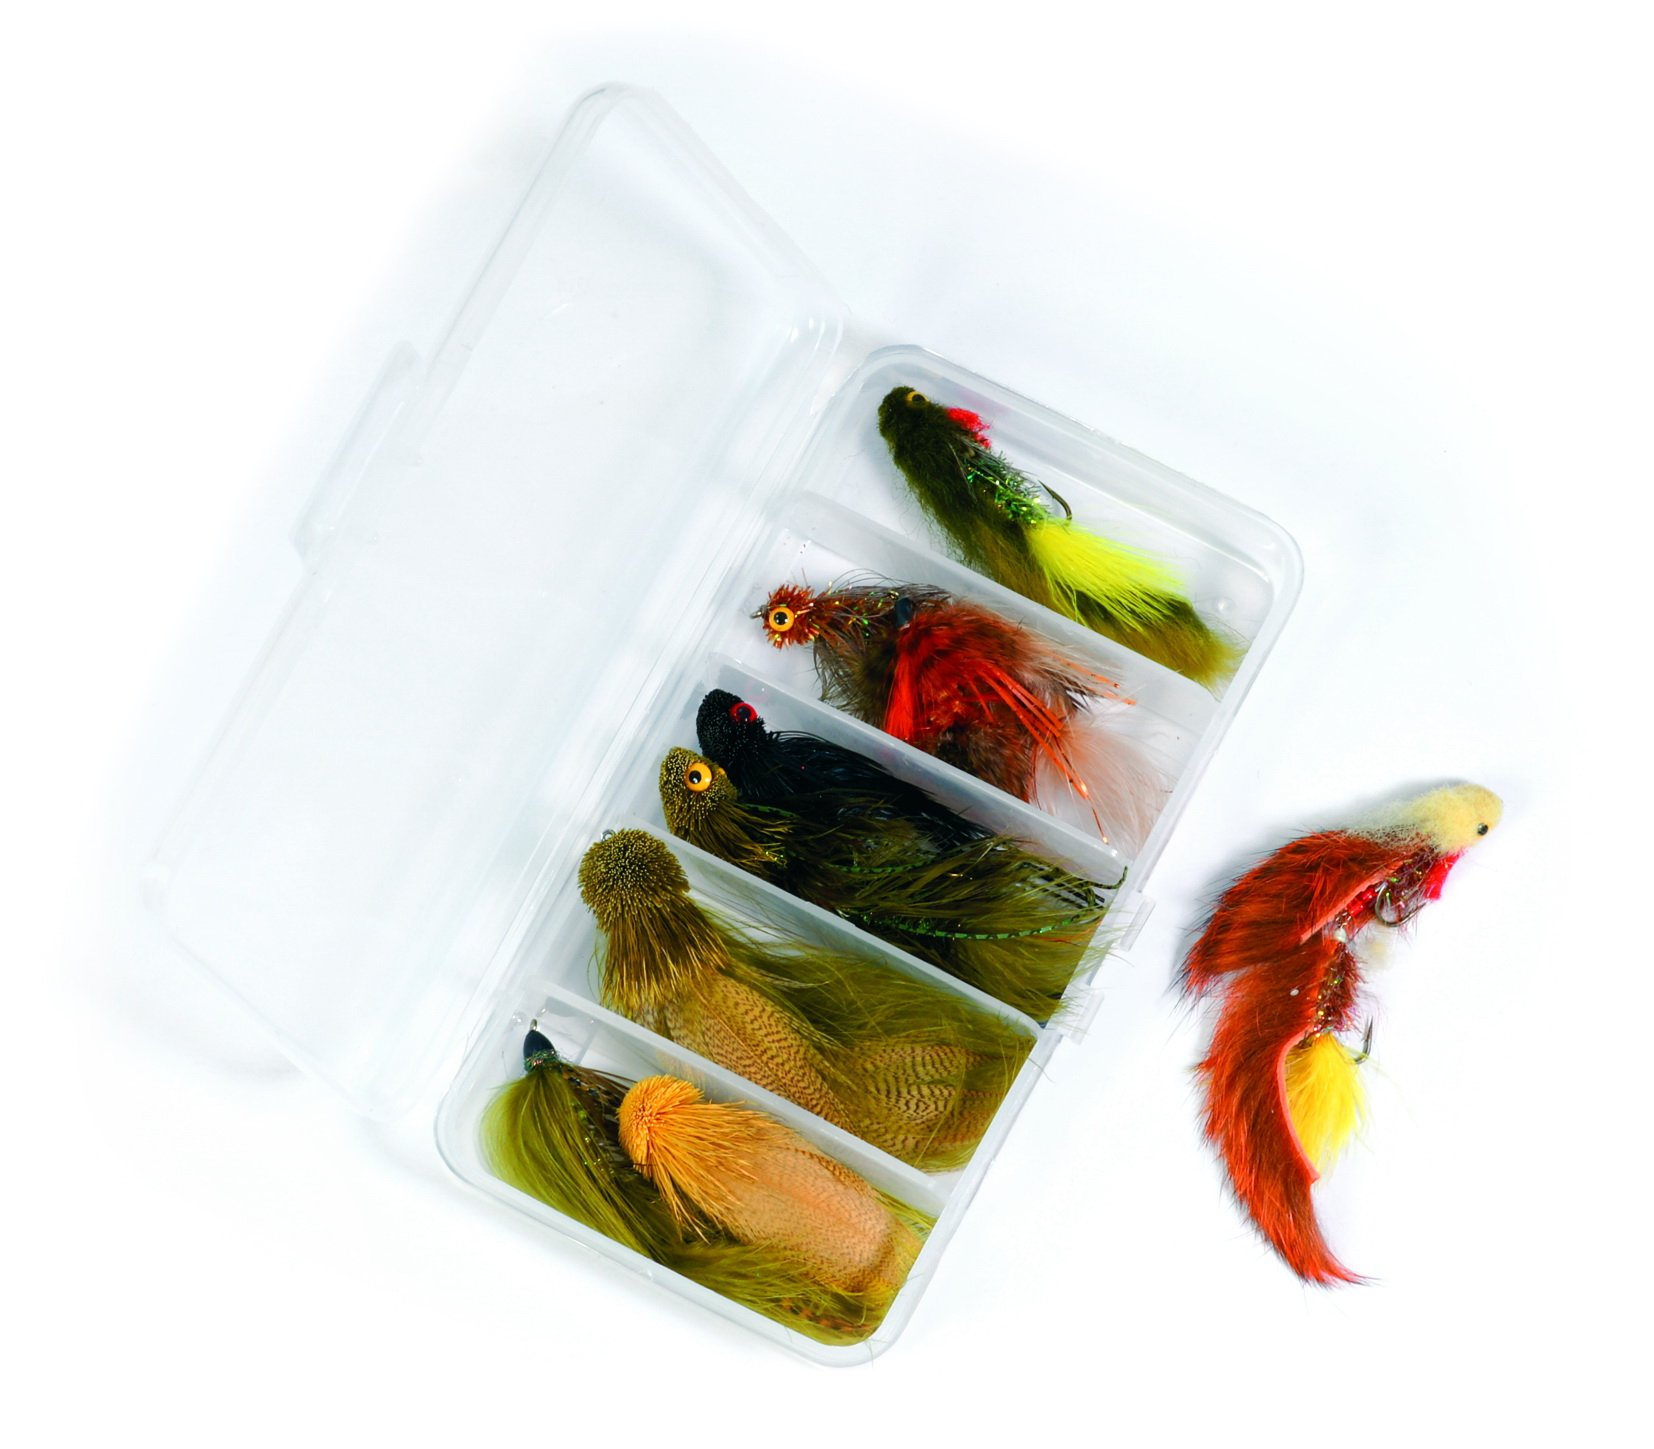 Rainy's Streamer Fly Fishing Flies -kit - Galloup's Signature- Collection of 9 Flies